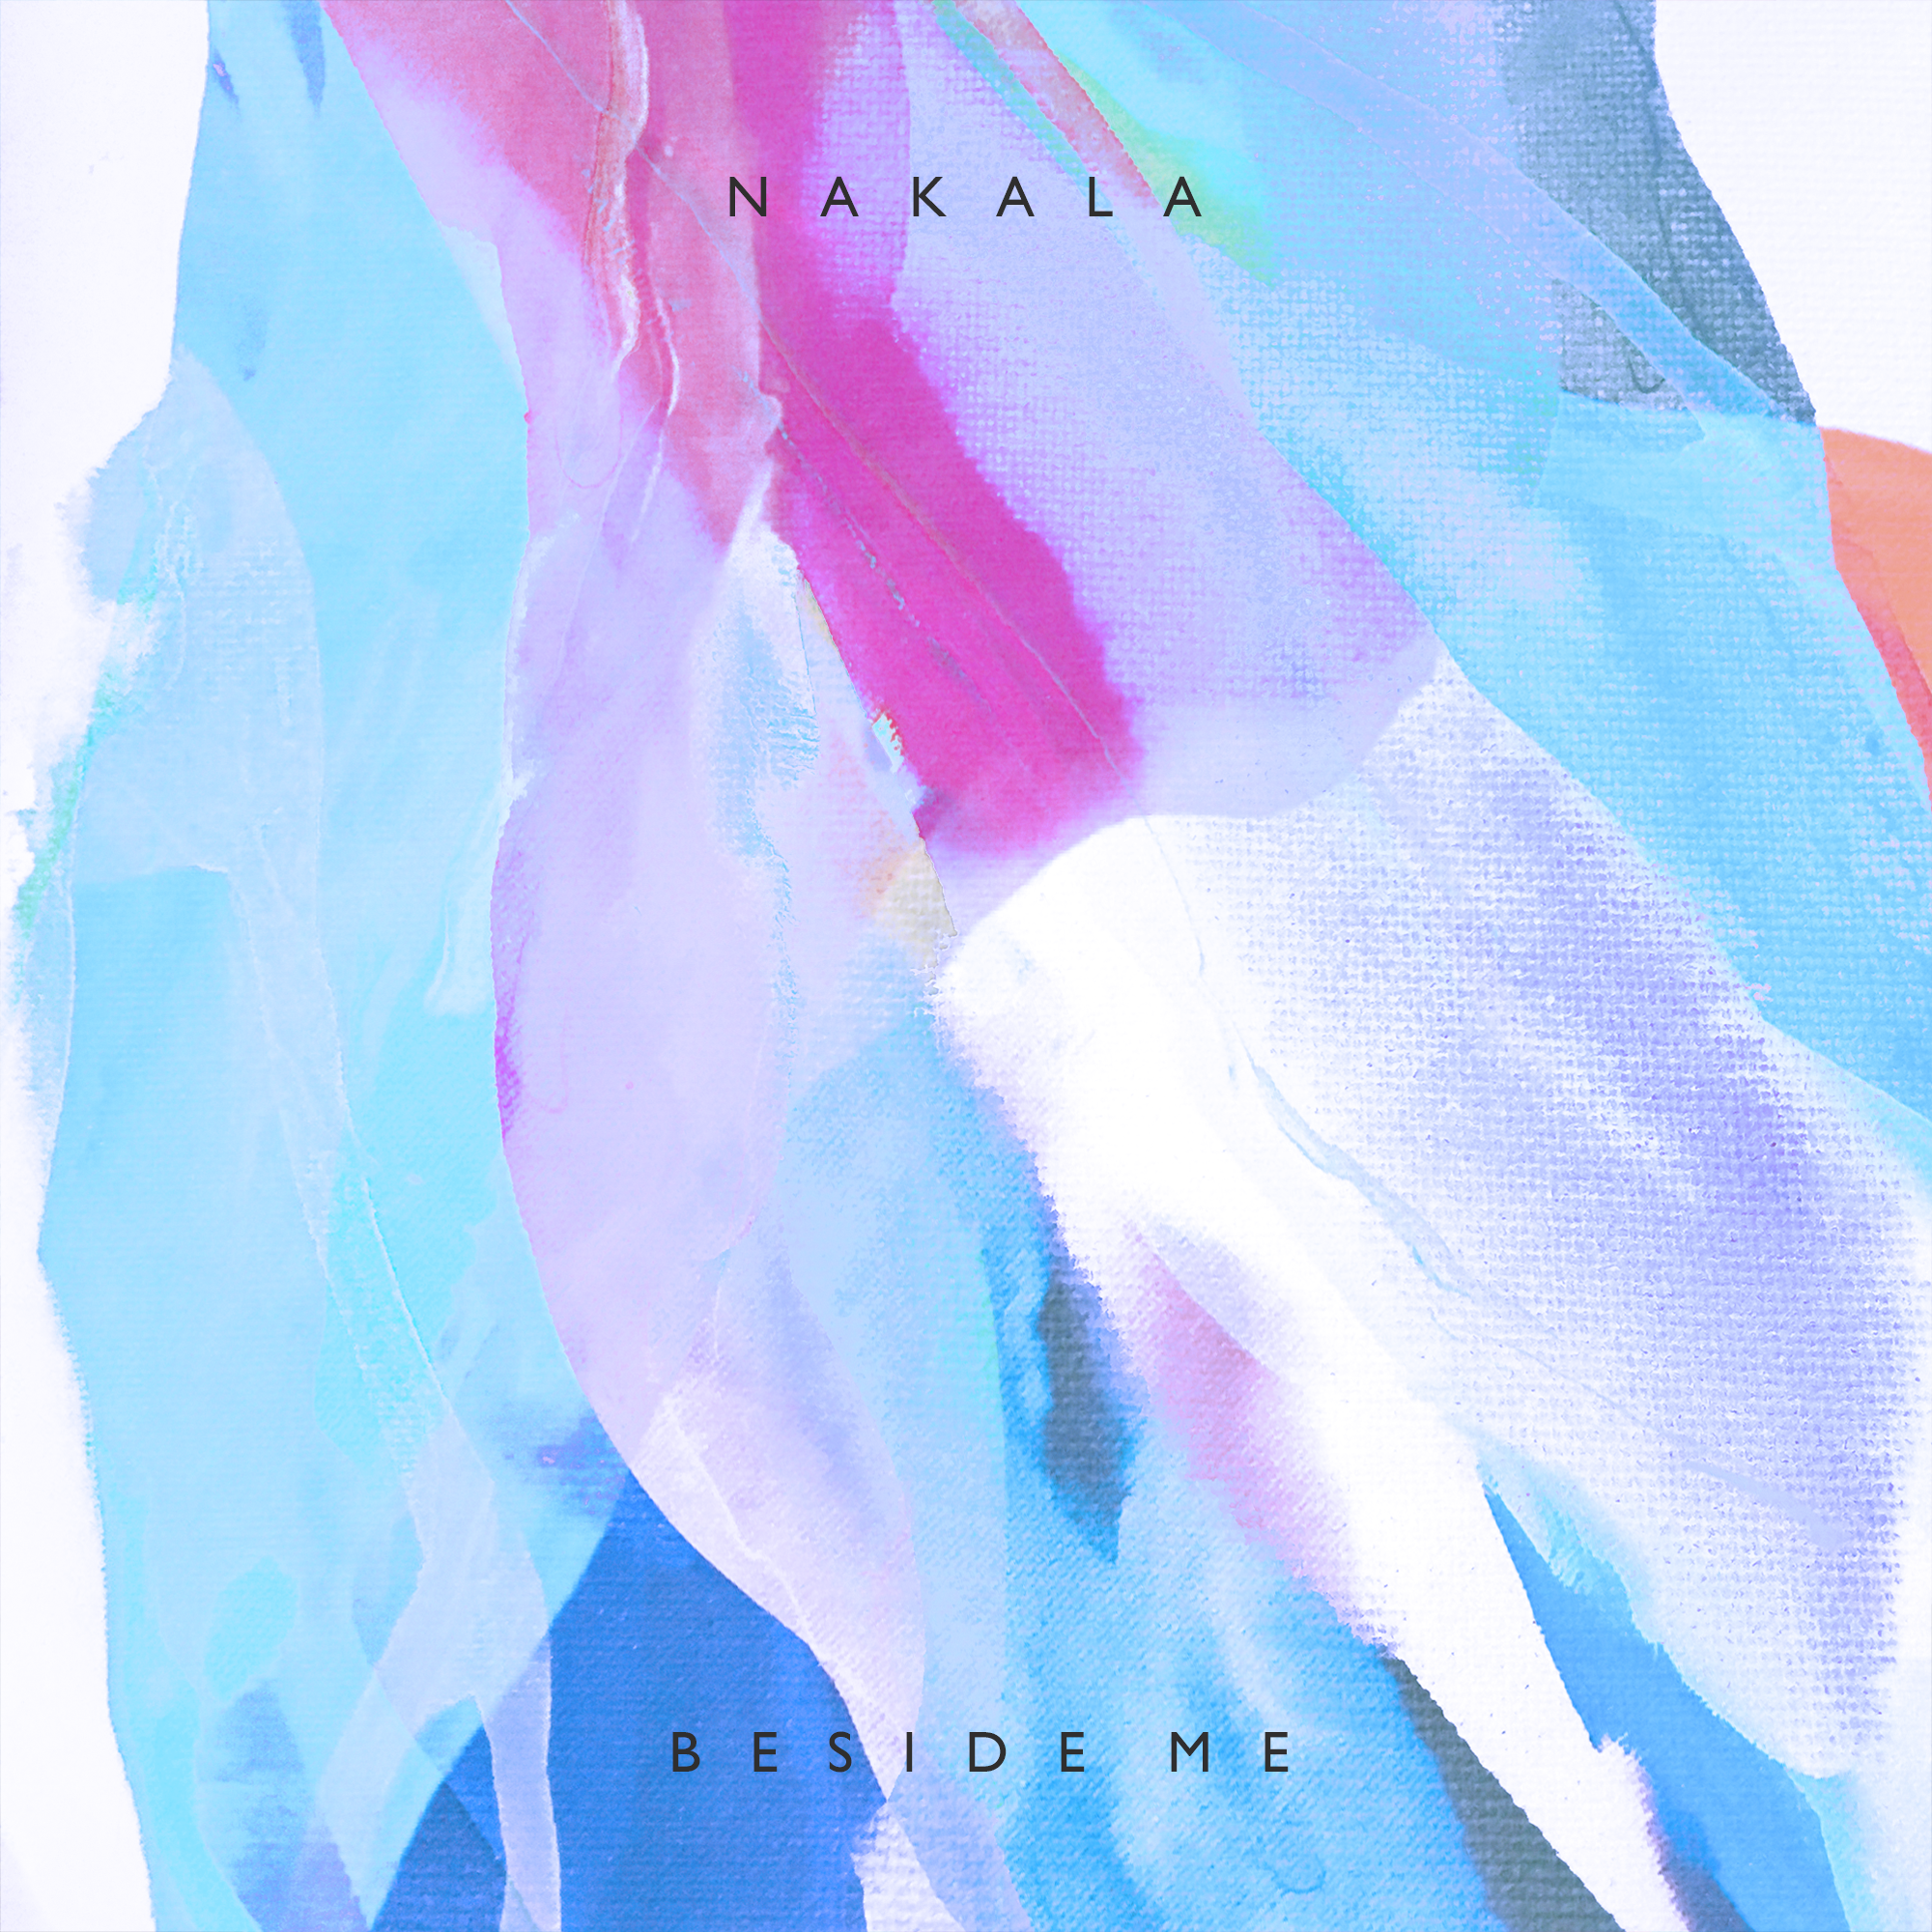 nakala besideme artwork sample.png